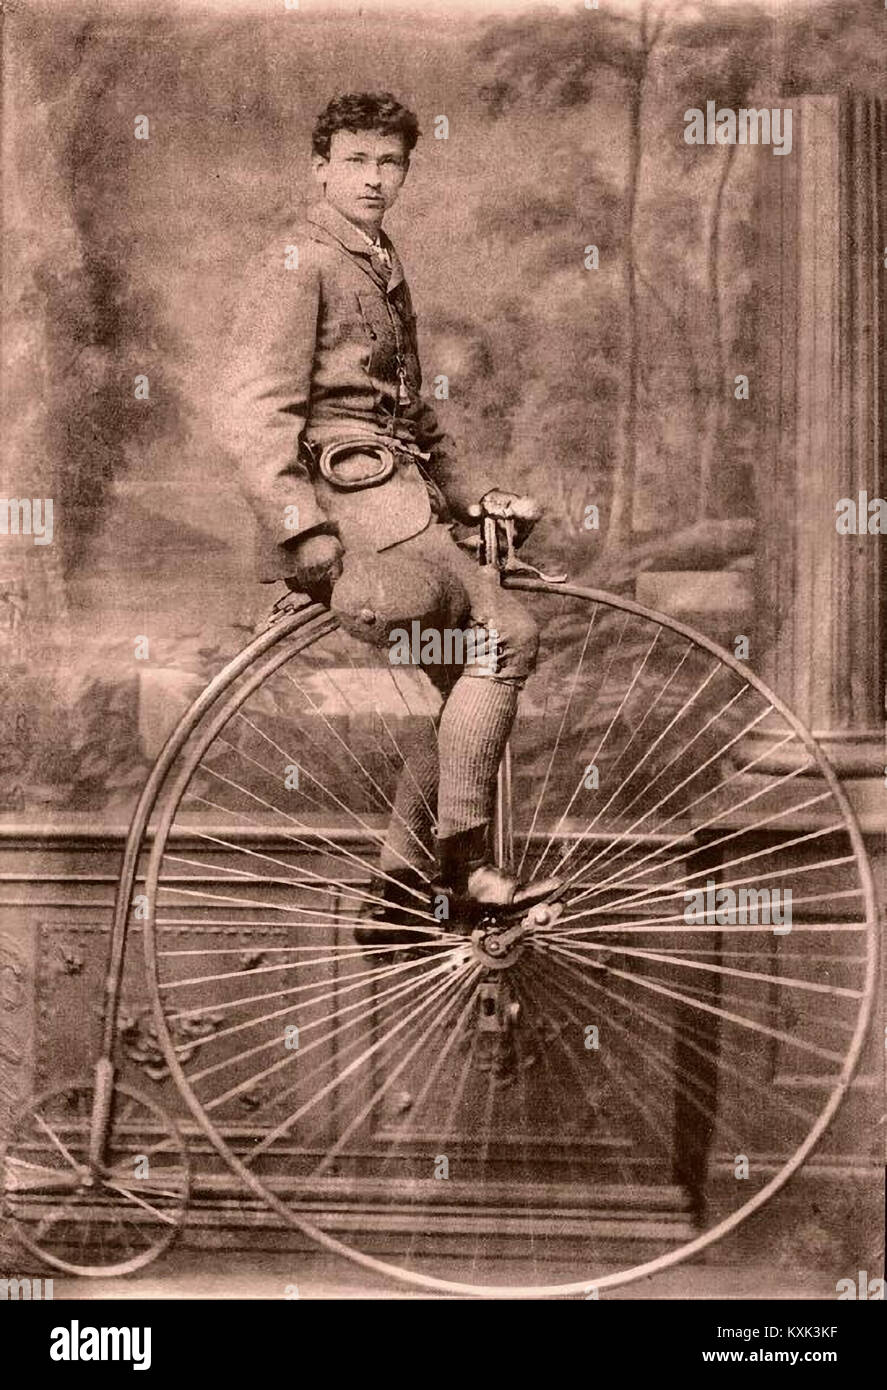 Penny Farthing Bicycle - Stock Image